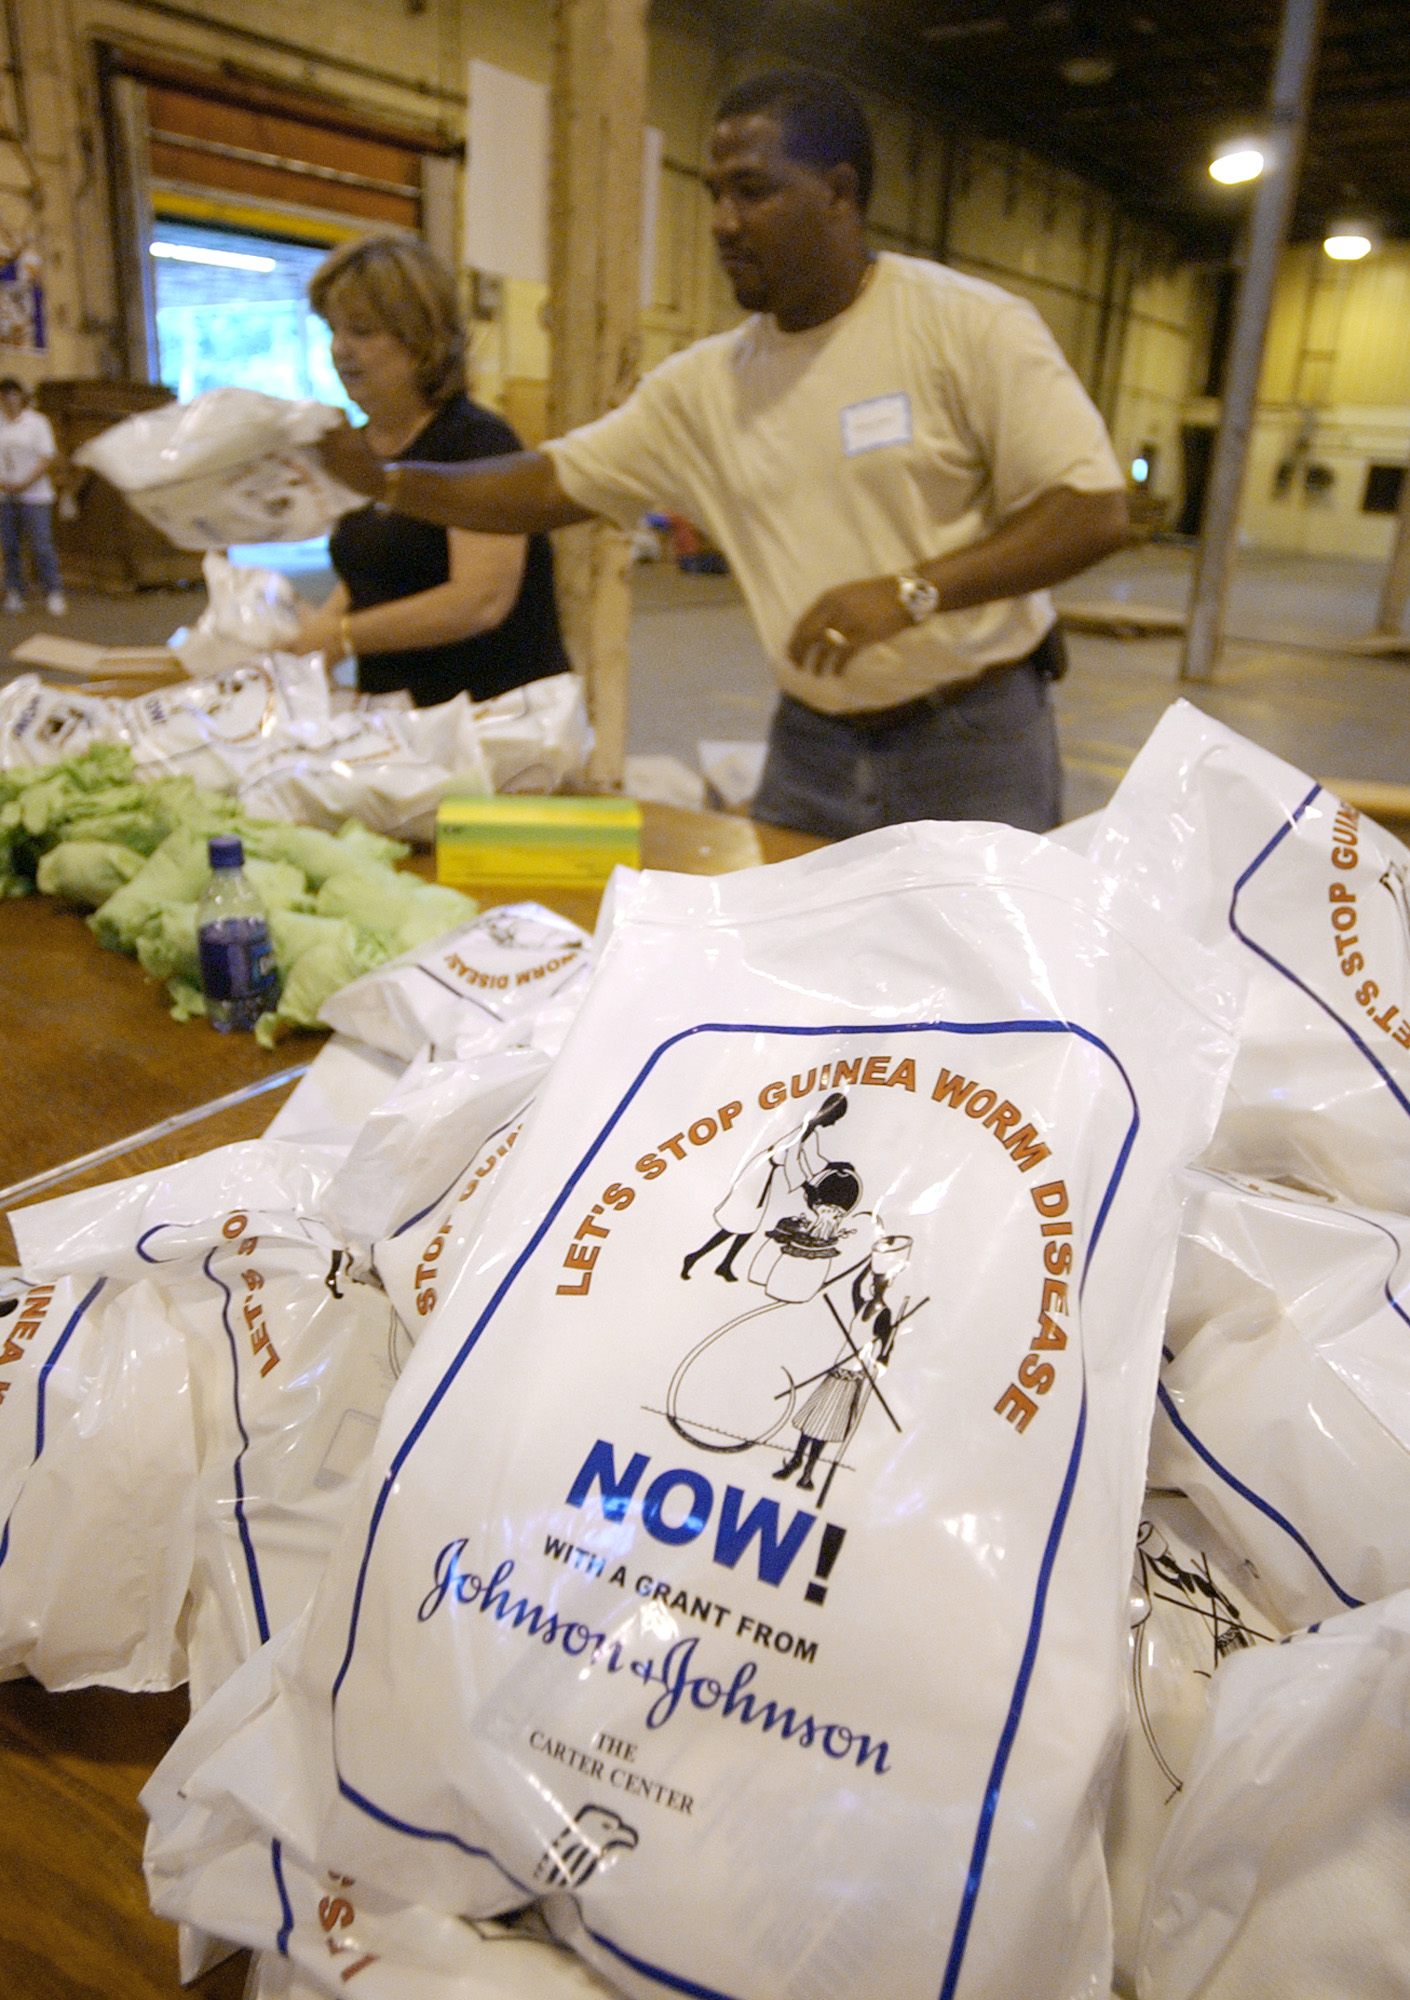 Volunteers Moises Matos and Helen Hand help assemble medical kits to fight Guinea worm disease at a warehouse on July 28, 2004 in Atlanta.